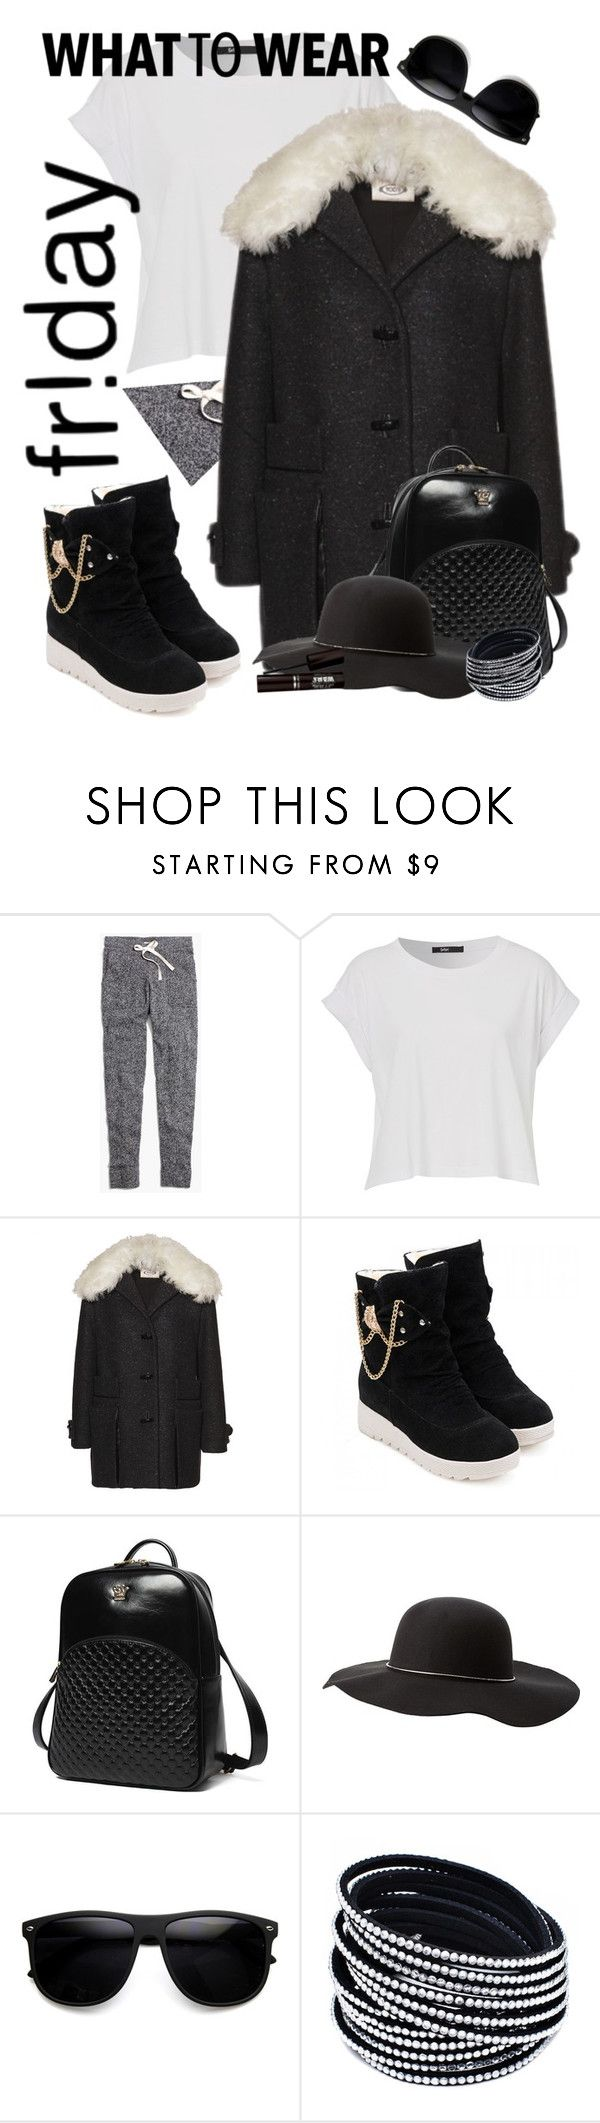 """Black Friday"" by nieboskakara ❤ liked on Polyvore featuring Madewell, Tod's, Princess Carousel and Charlotte Russe"